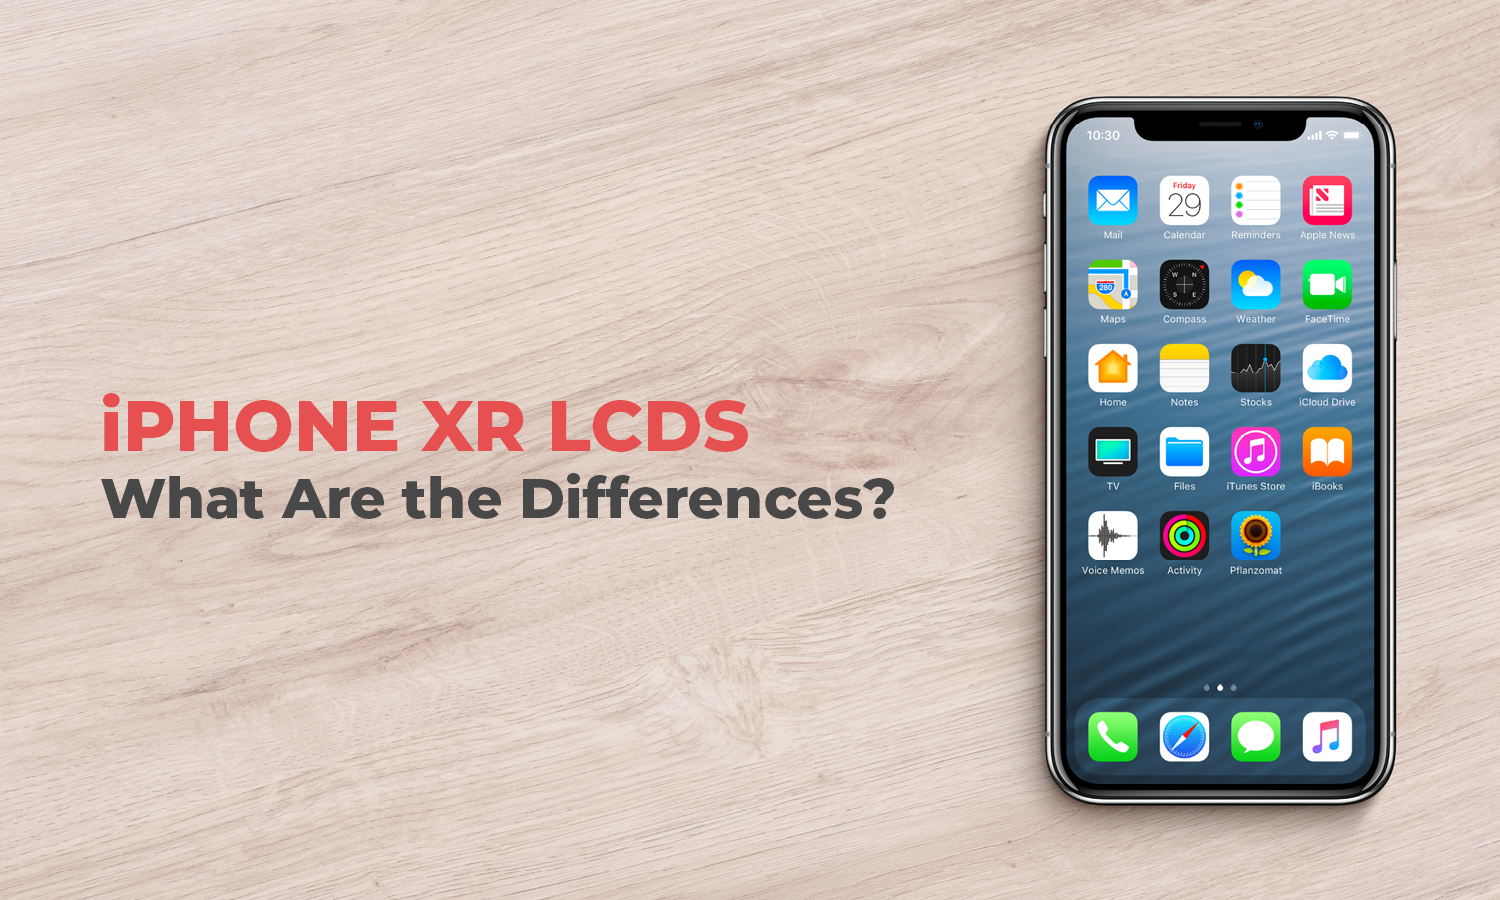 iPhone XR LCDs: What Are the Differences?